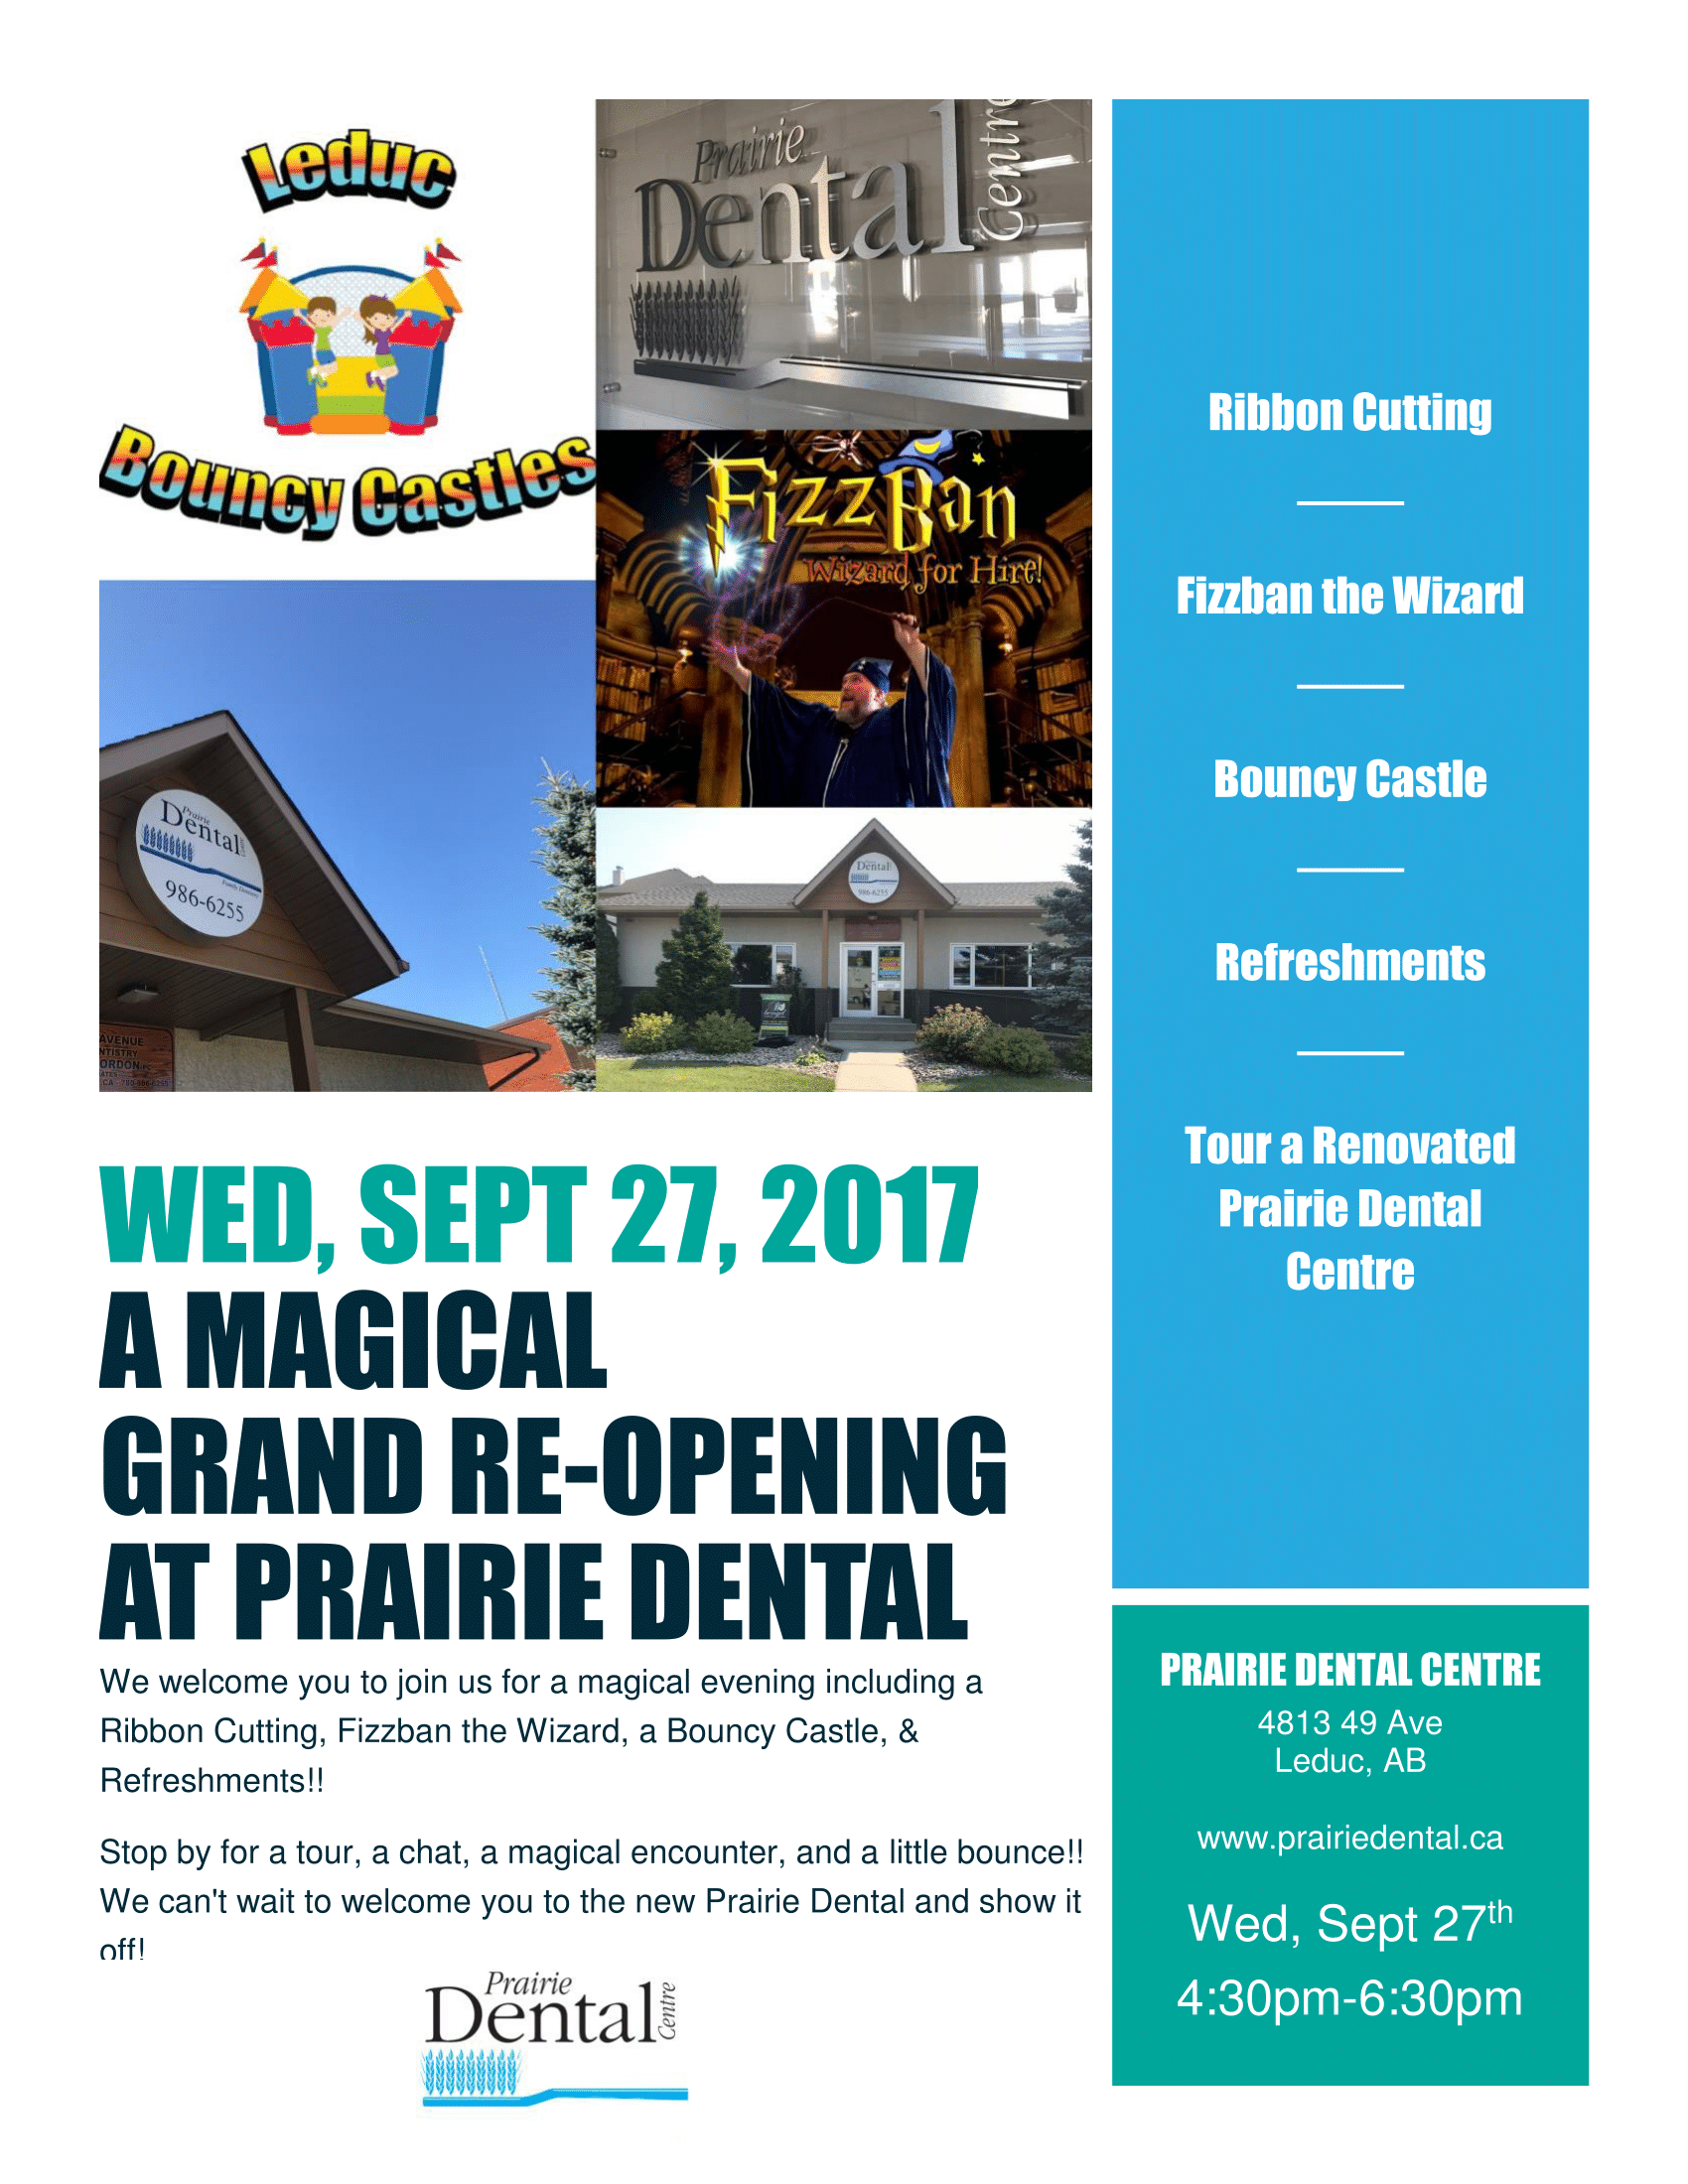 Grand Re-Opening Poster Leduc Dentist 2017-1.png